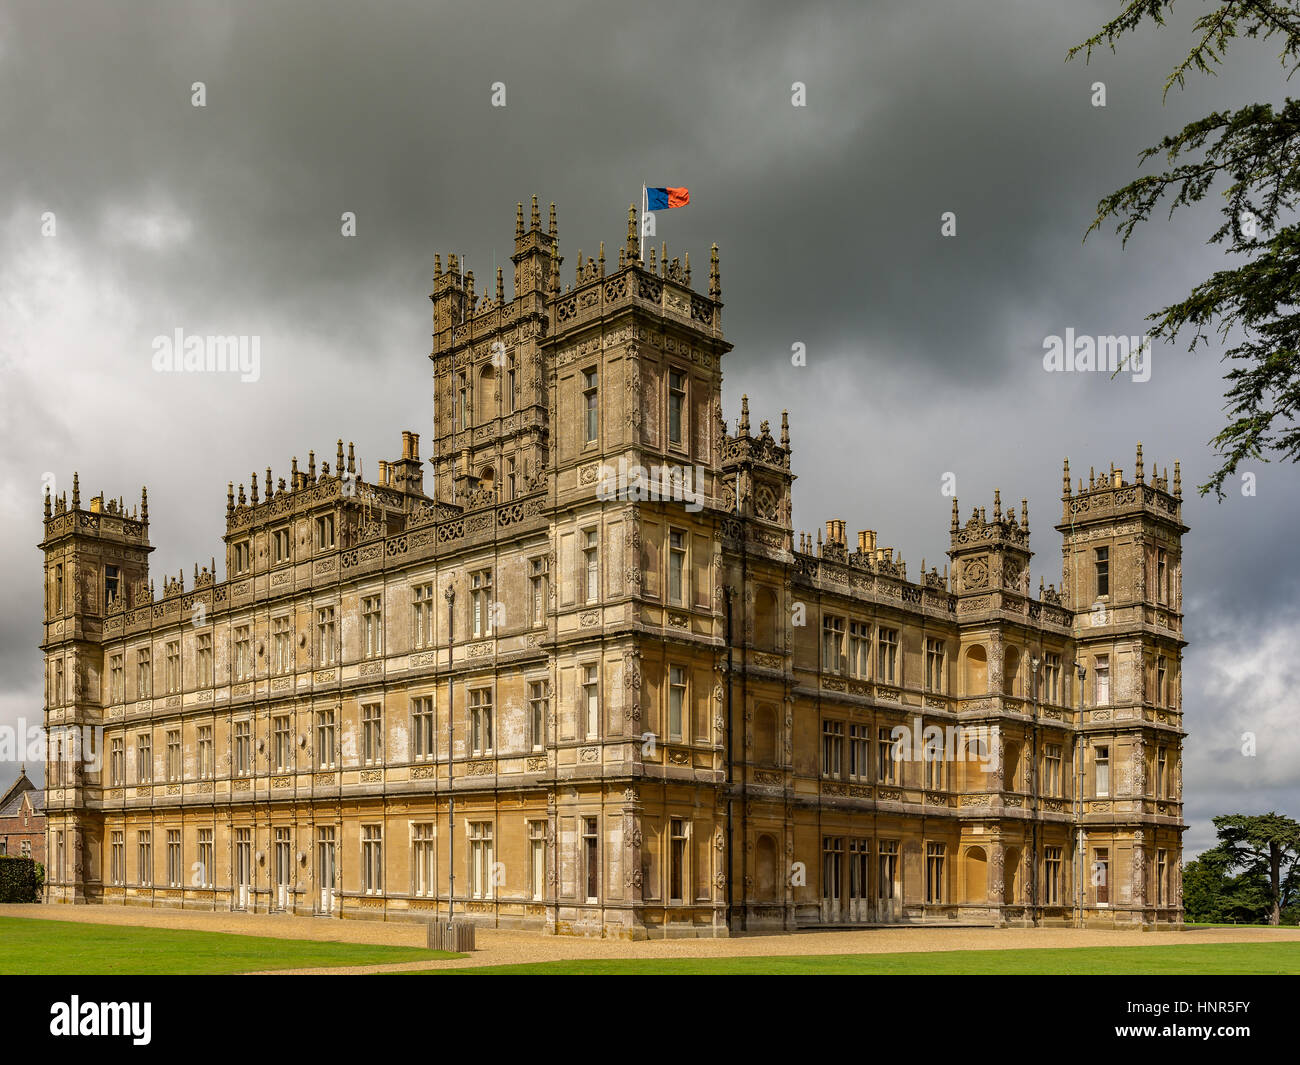 highclere castle england stockfotos highclere castle england bilder alamy. Black Bedroom Furniture Sets. Home Design Ideas